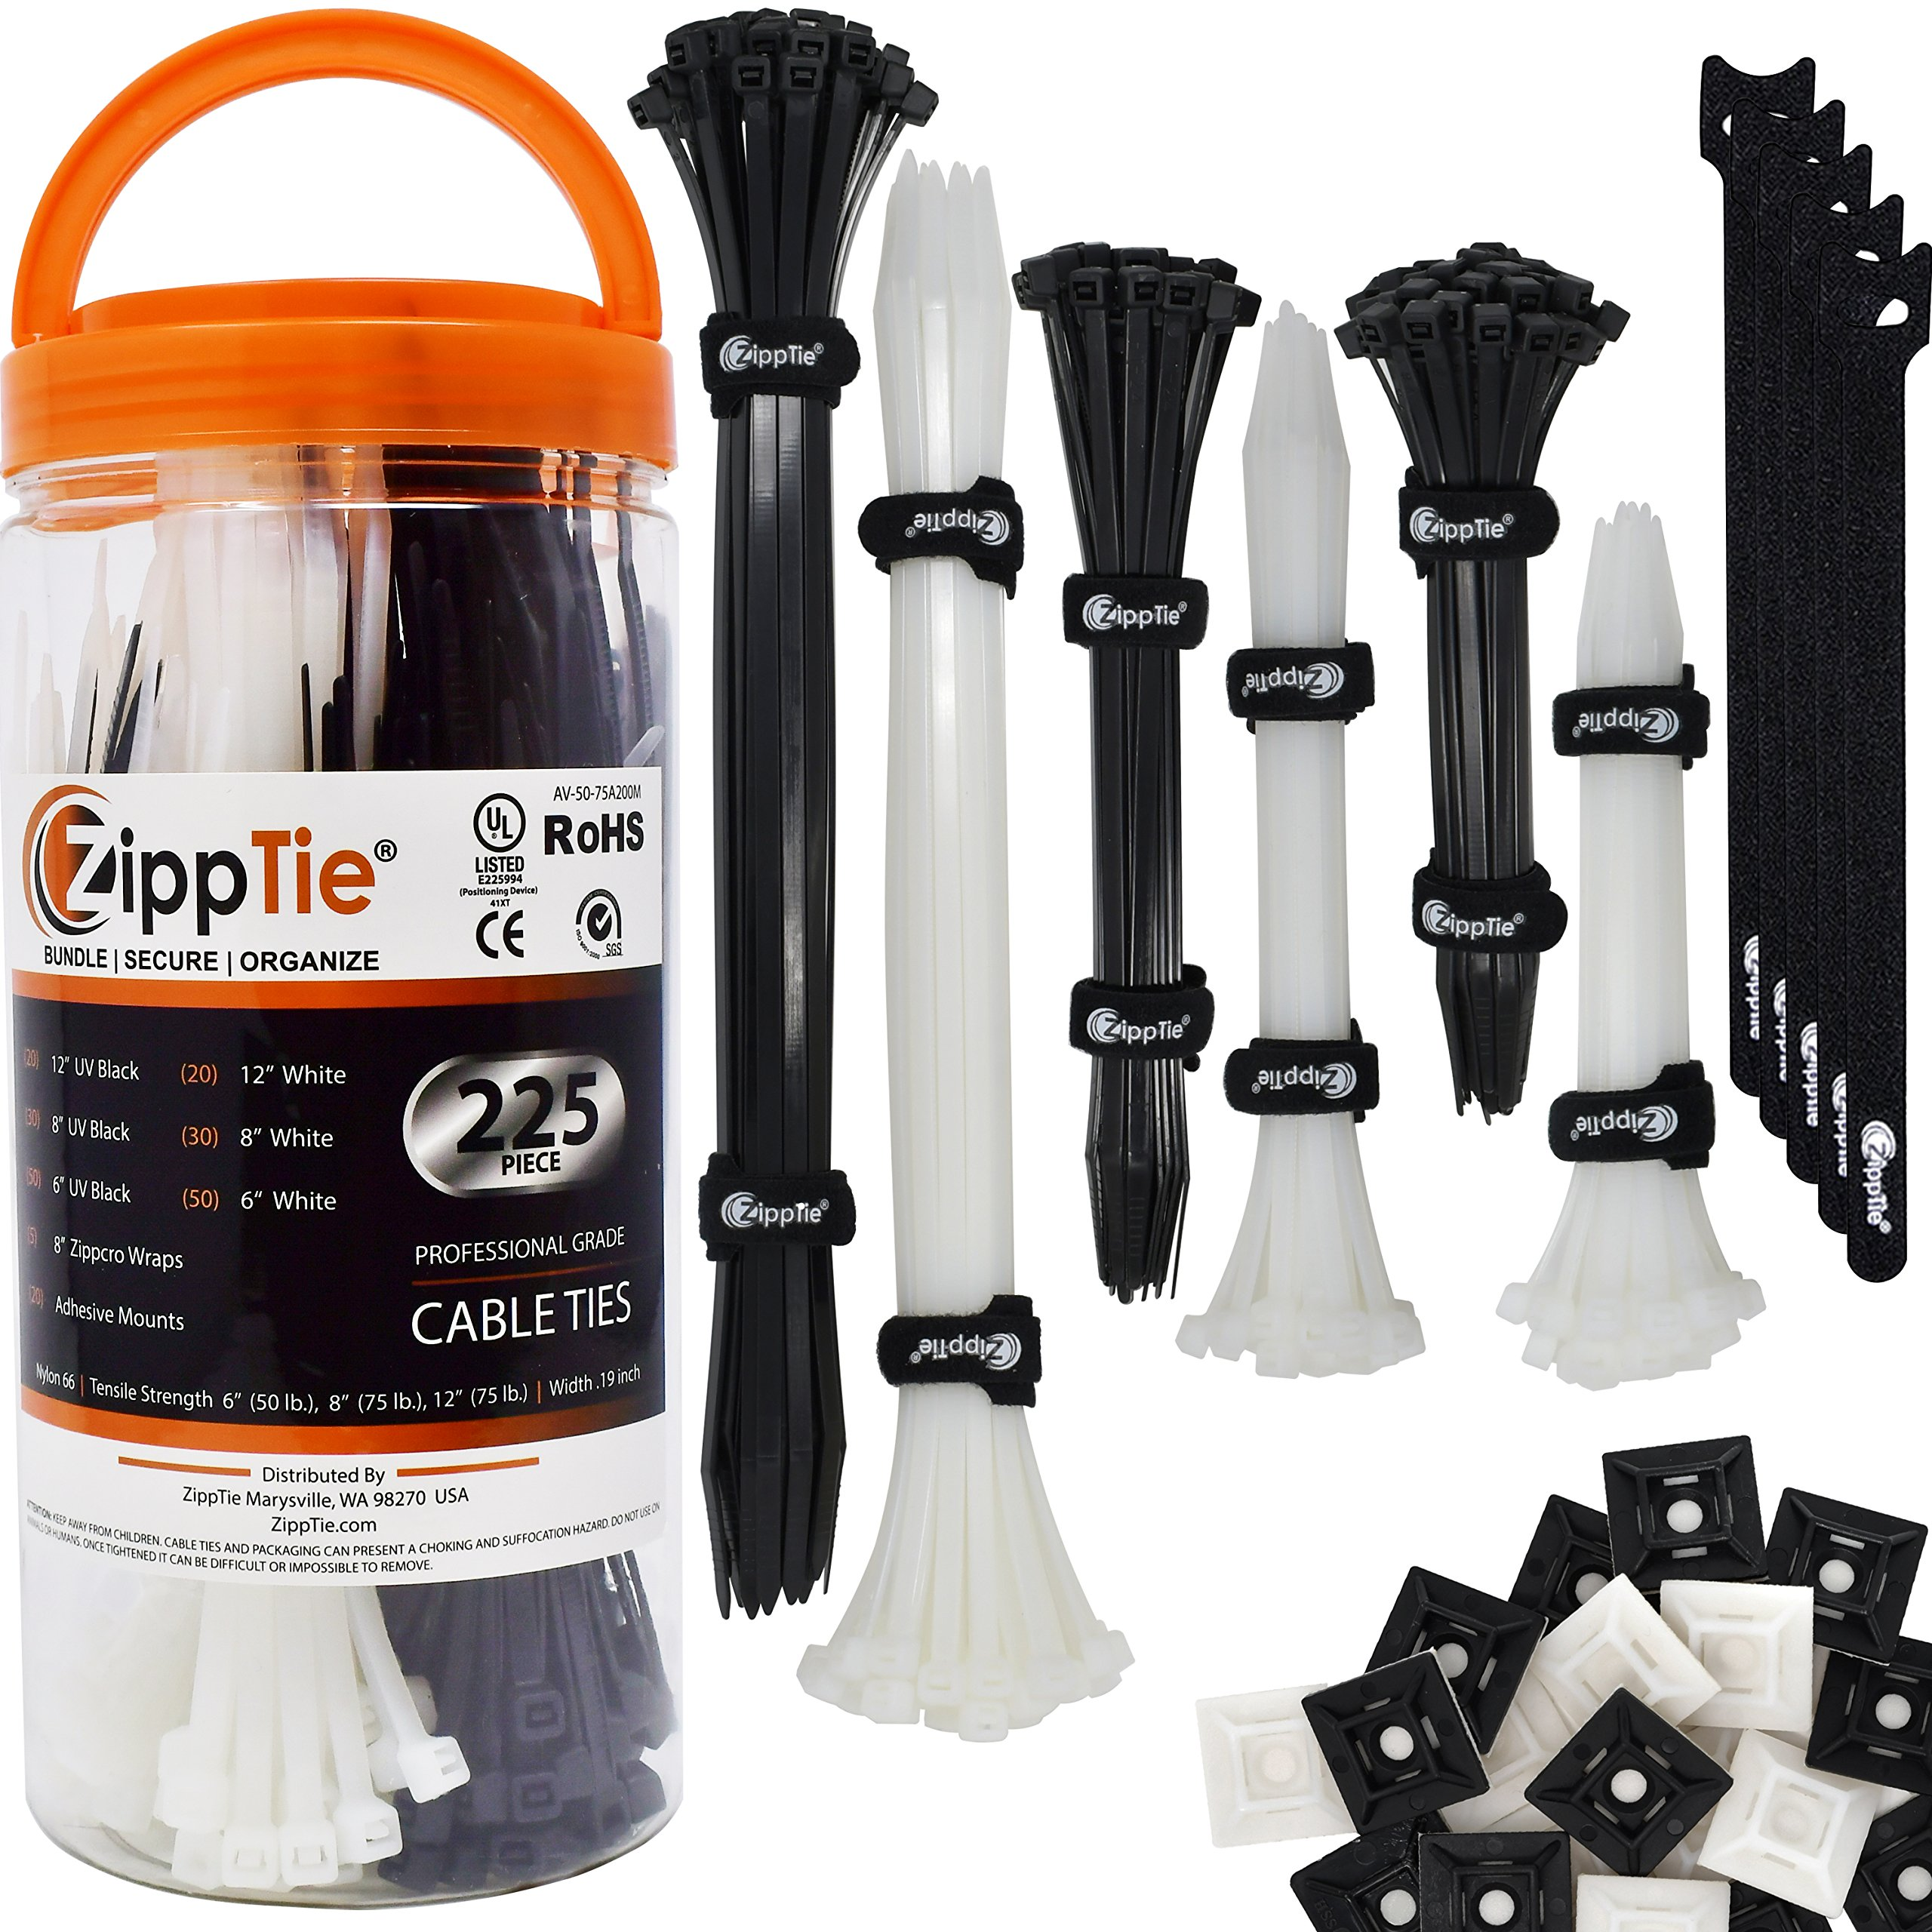 Cable Ties by ZippTie | 225pc Cable Management Kit 6'', 8'', 12'' White & UV Black Heavy Duty (Zip Ties) 50lb & 75lb | Includes 20 Adhesive Base Mounts and 5 Reusable ZippCro Wraps